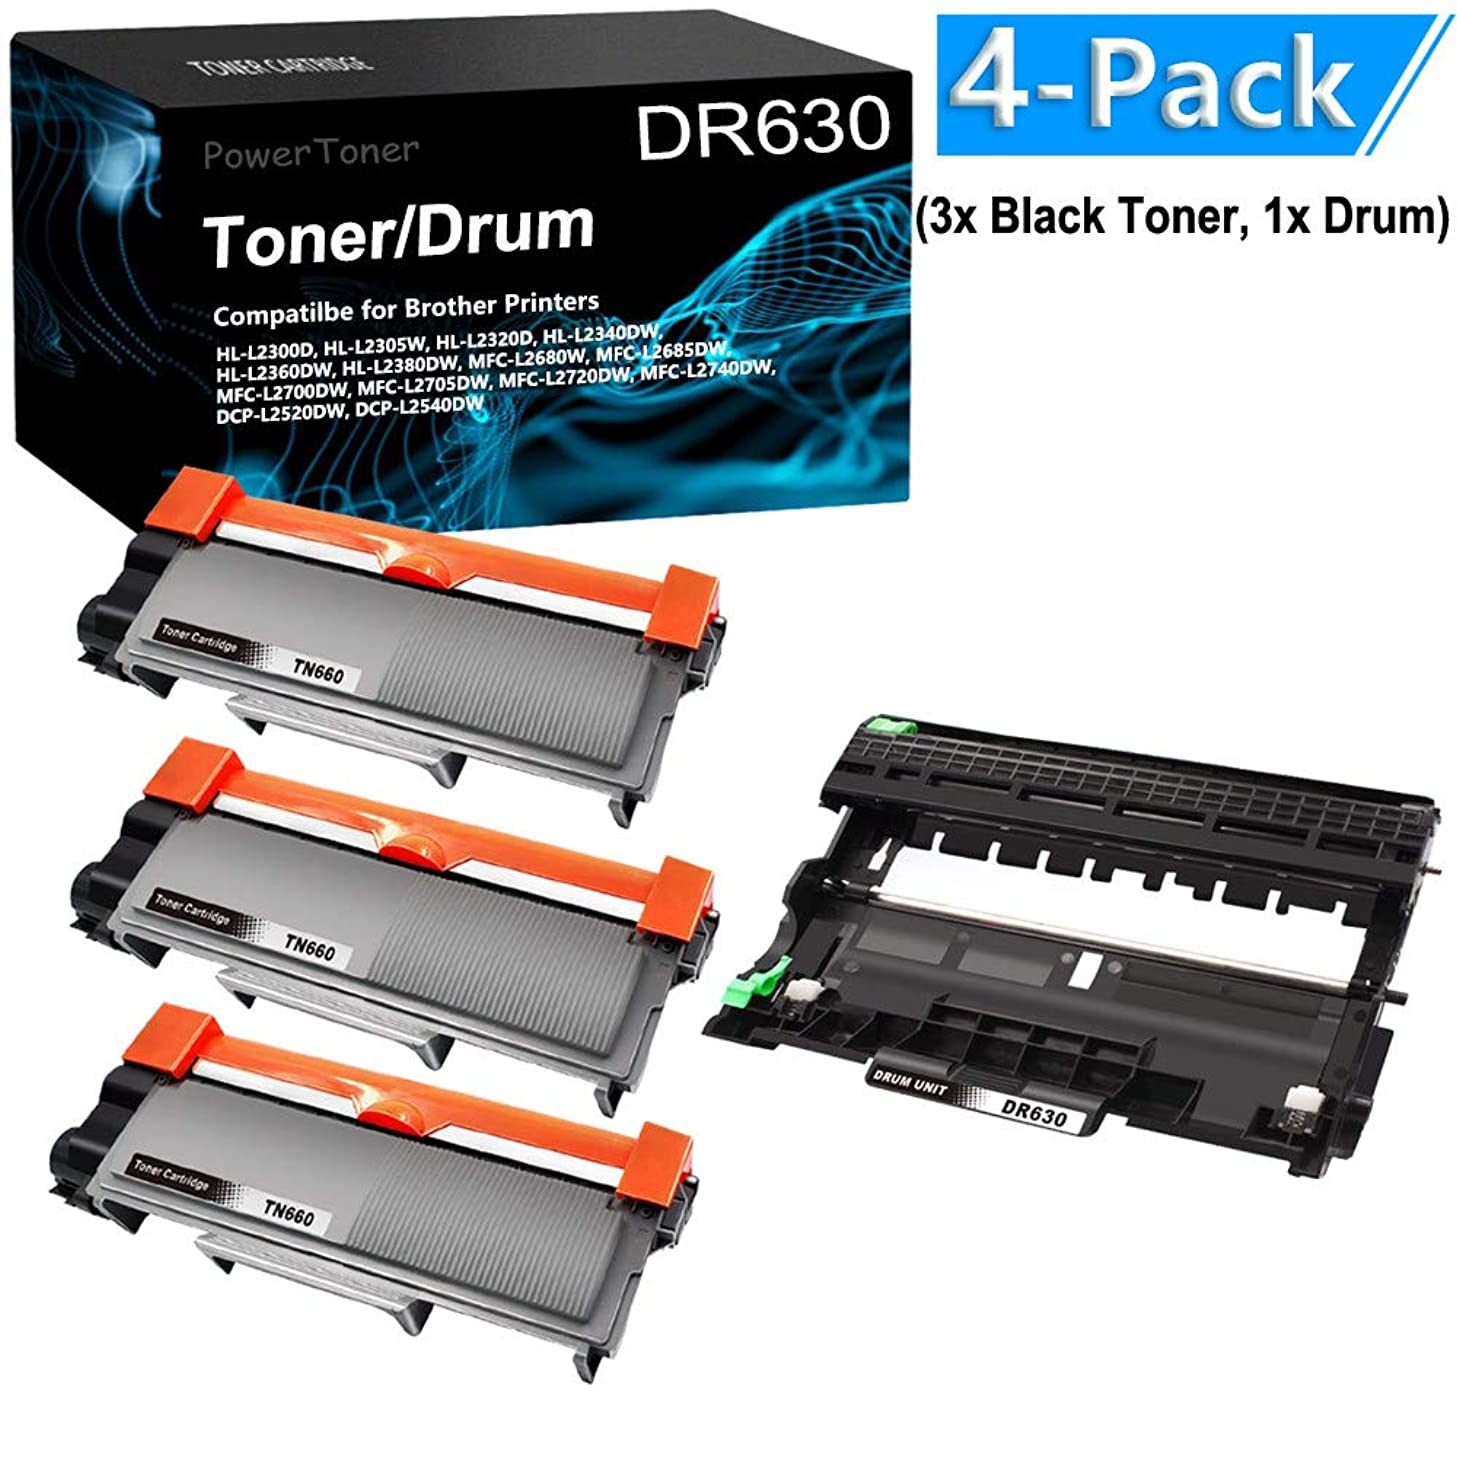 4-Pack (3X Black Toner,1x Drum Unit) Compatible TN660 DR630 Printer Cartridge Drum Unit Replacement for Brother TN660 DR630 to use with Brother MFC-L2700DW MFC-L2705DW Printer by PowerToner